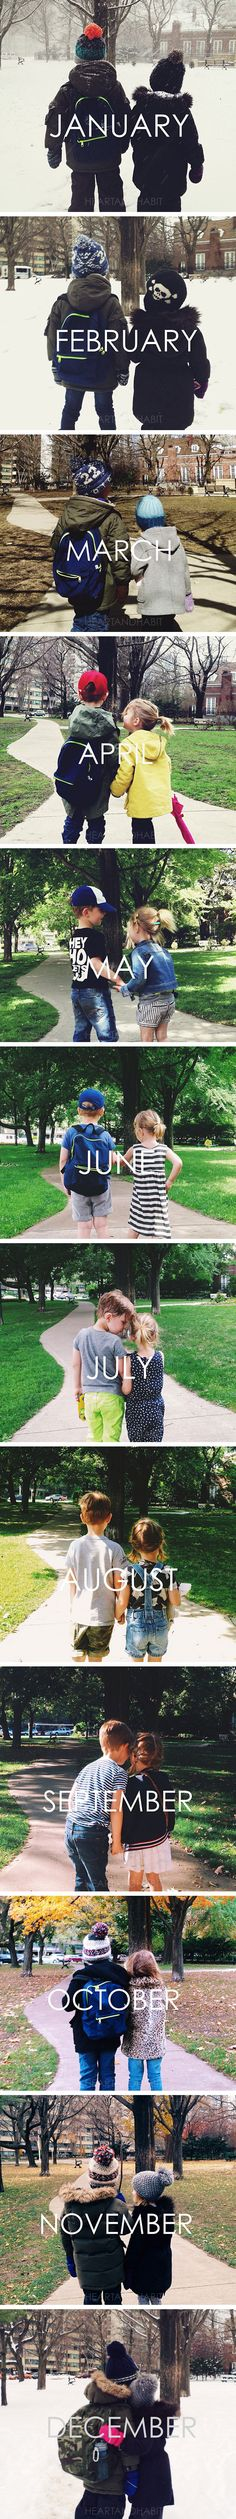 Cutest idea ever!! Take a picture in the same spot every month and then make a calendar out of it. This is so cute. @Melissa Squires Squires Squires Squires